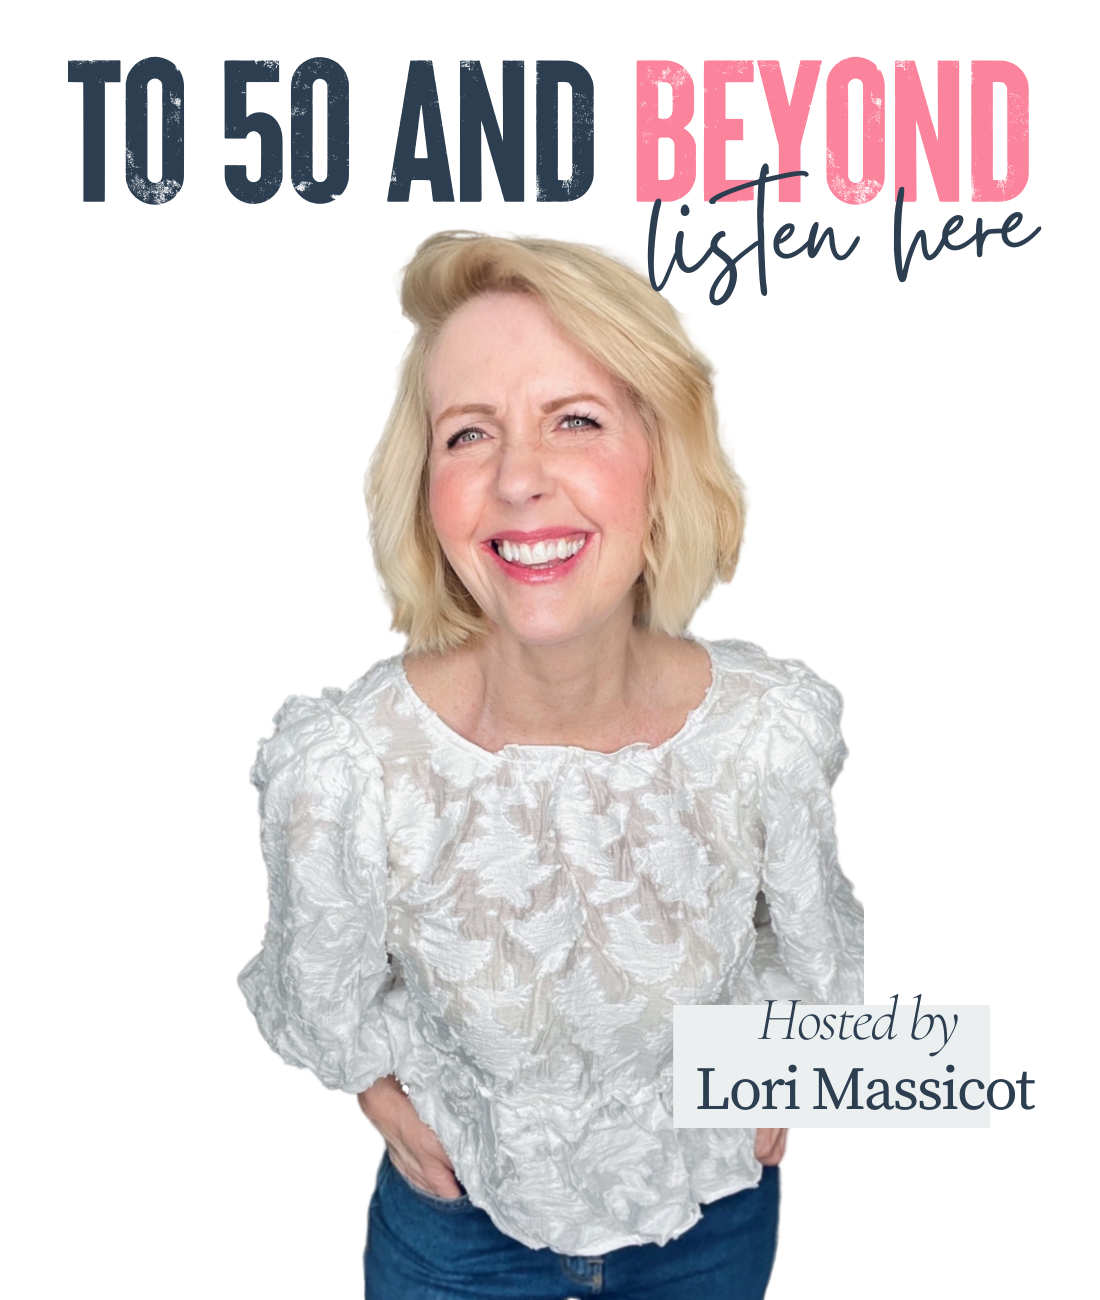 Blonde hair woman, white blouse and jeans smiling. To 50 and Beyond Podcast Host Lori Massicot.